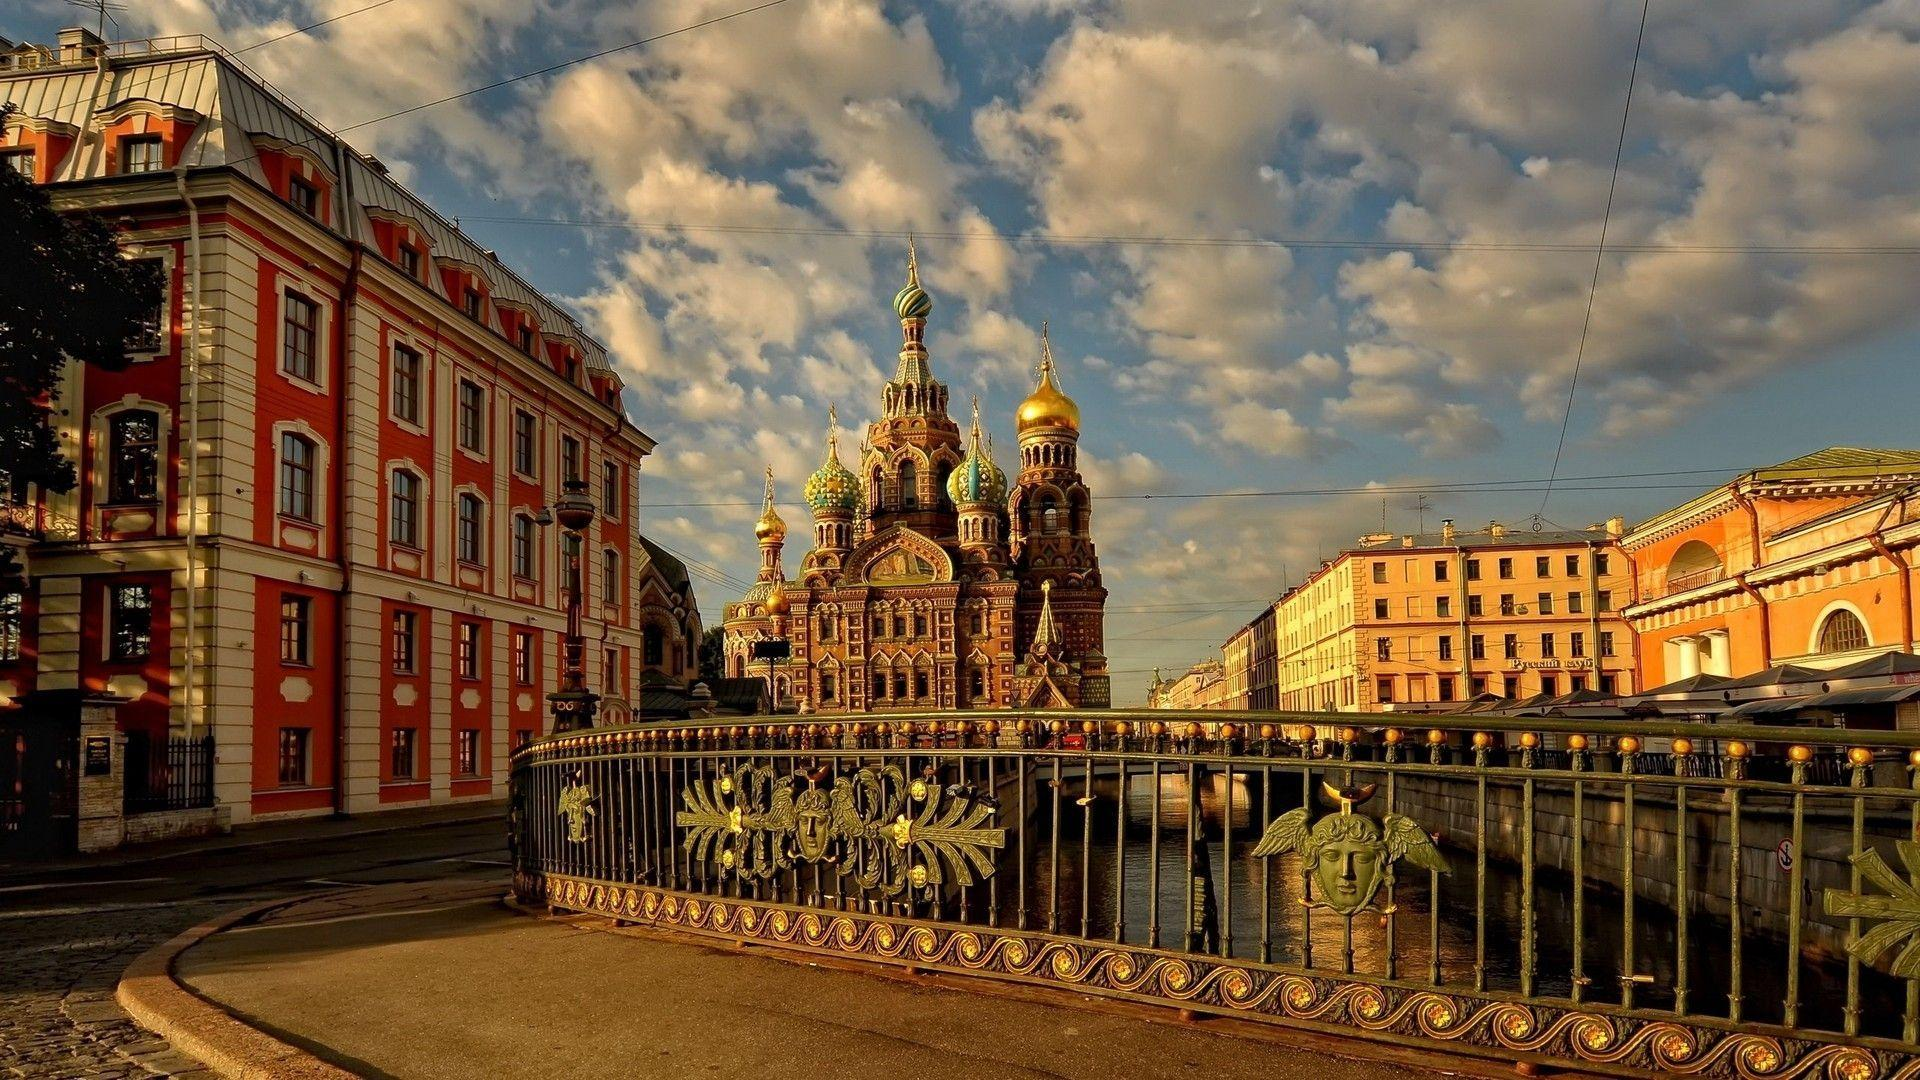 Download Saint Petersburg Russia HD Wallpapers Top Amazing HD (high ...